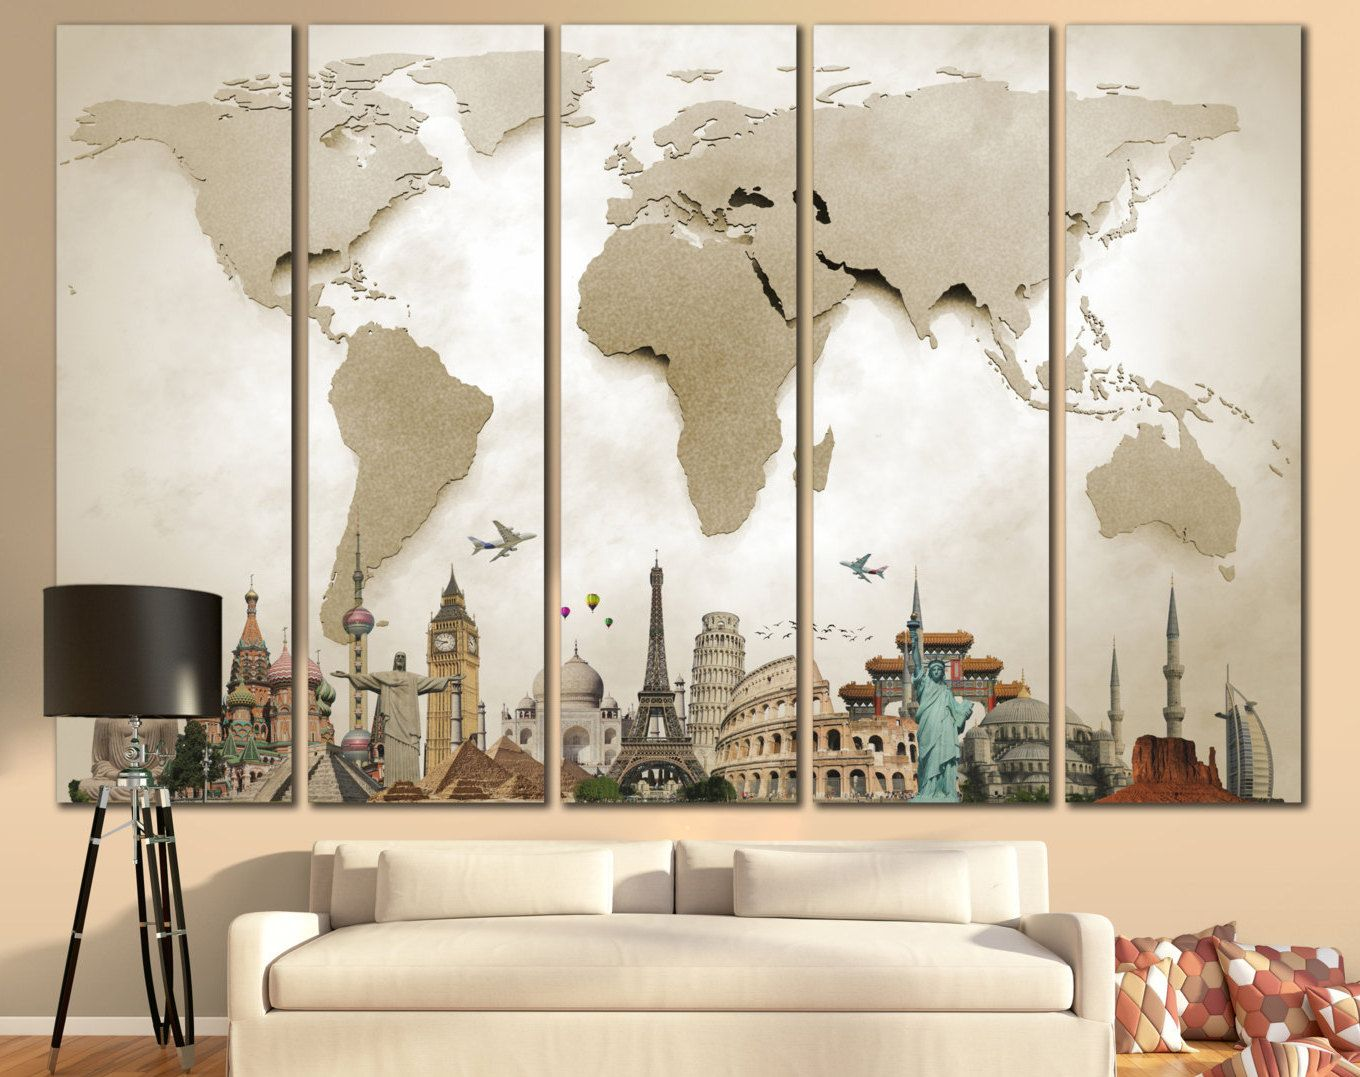 Large world map canvas print wall art 13 or 5 panel by Large wall art